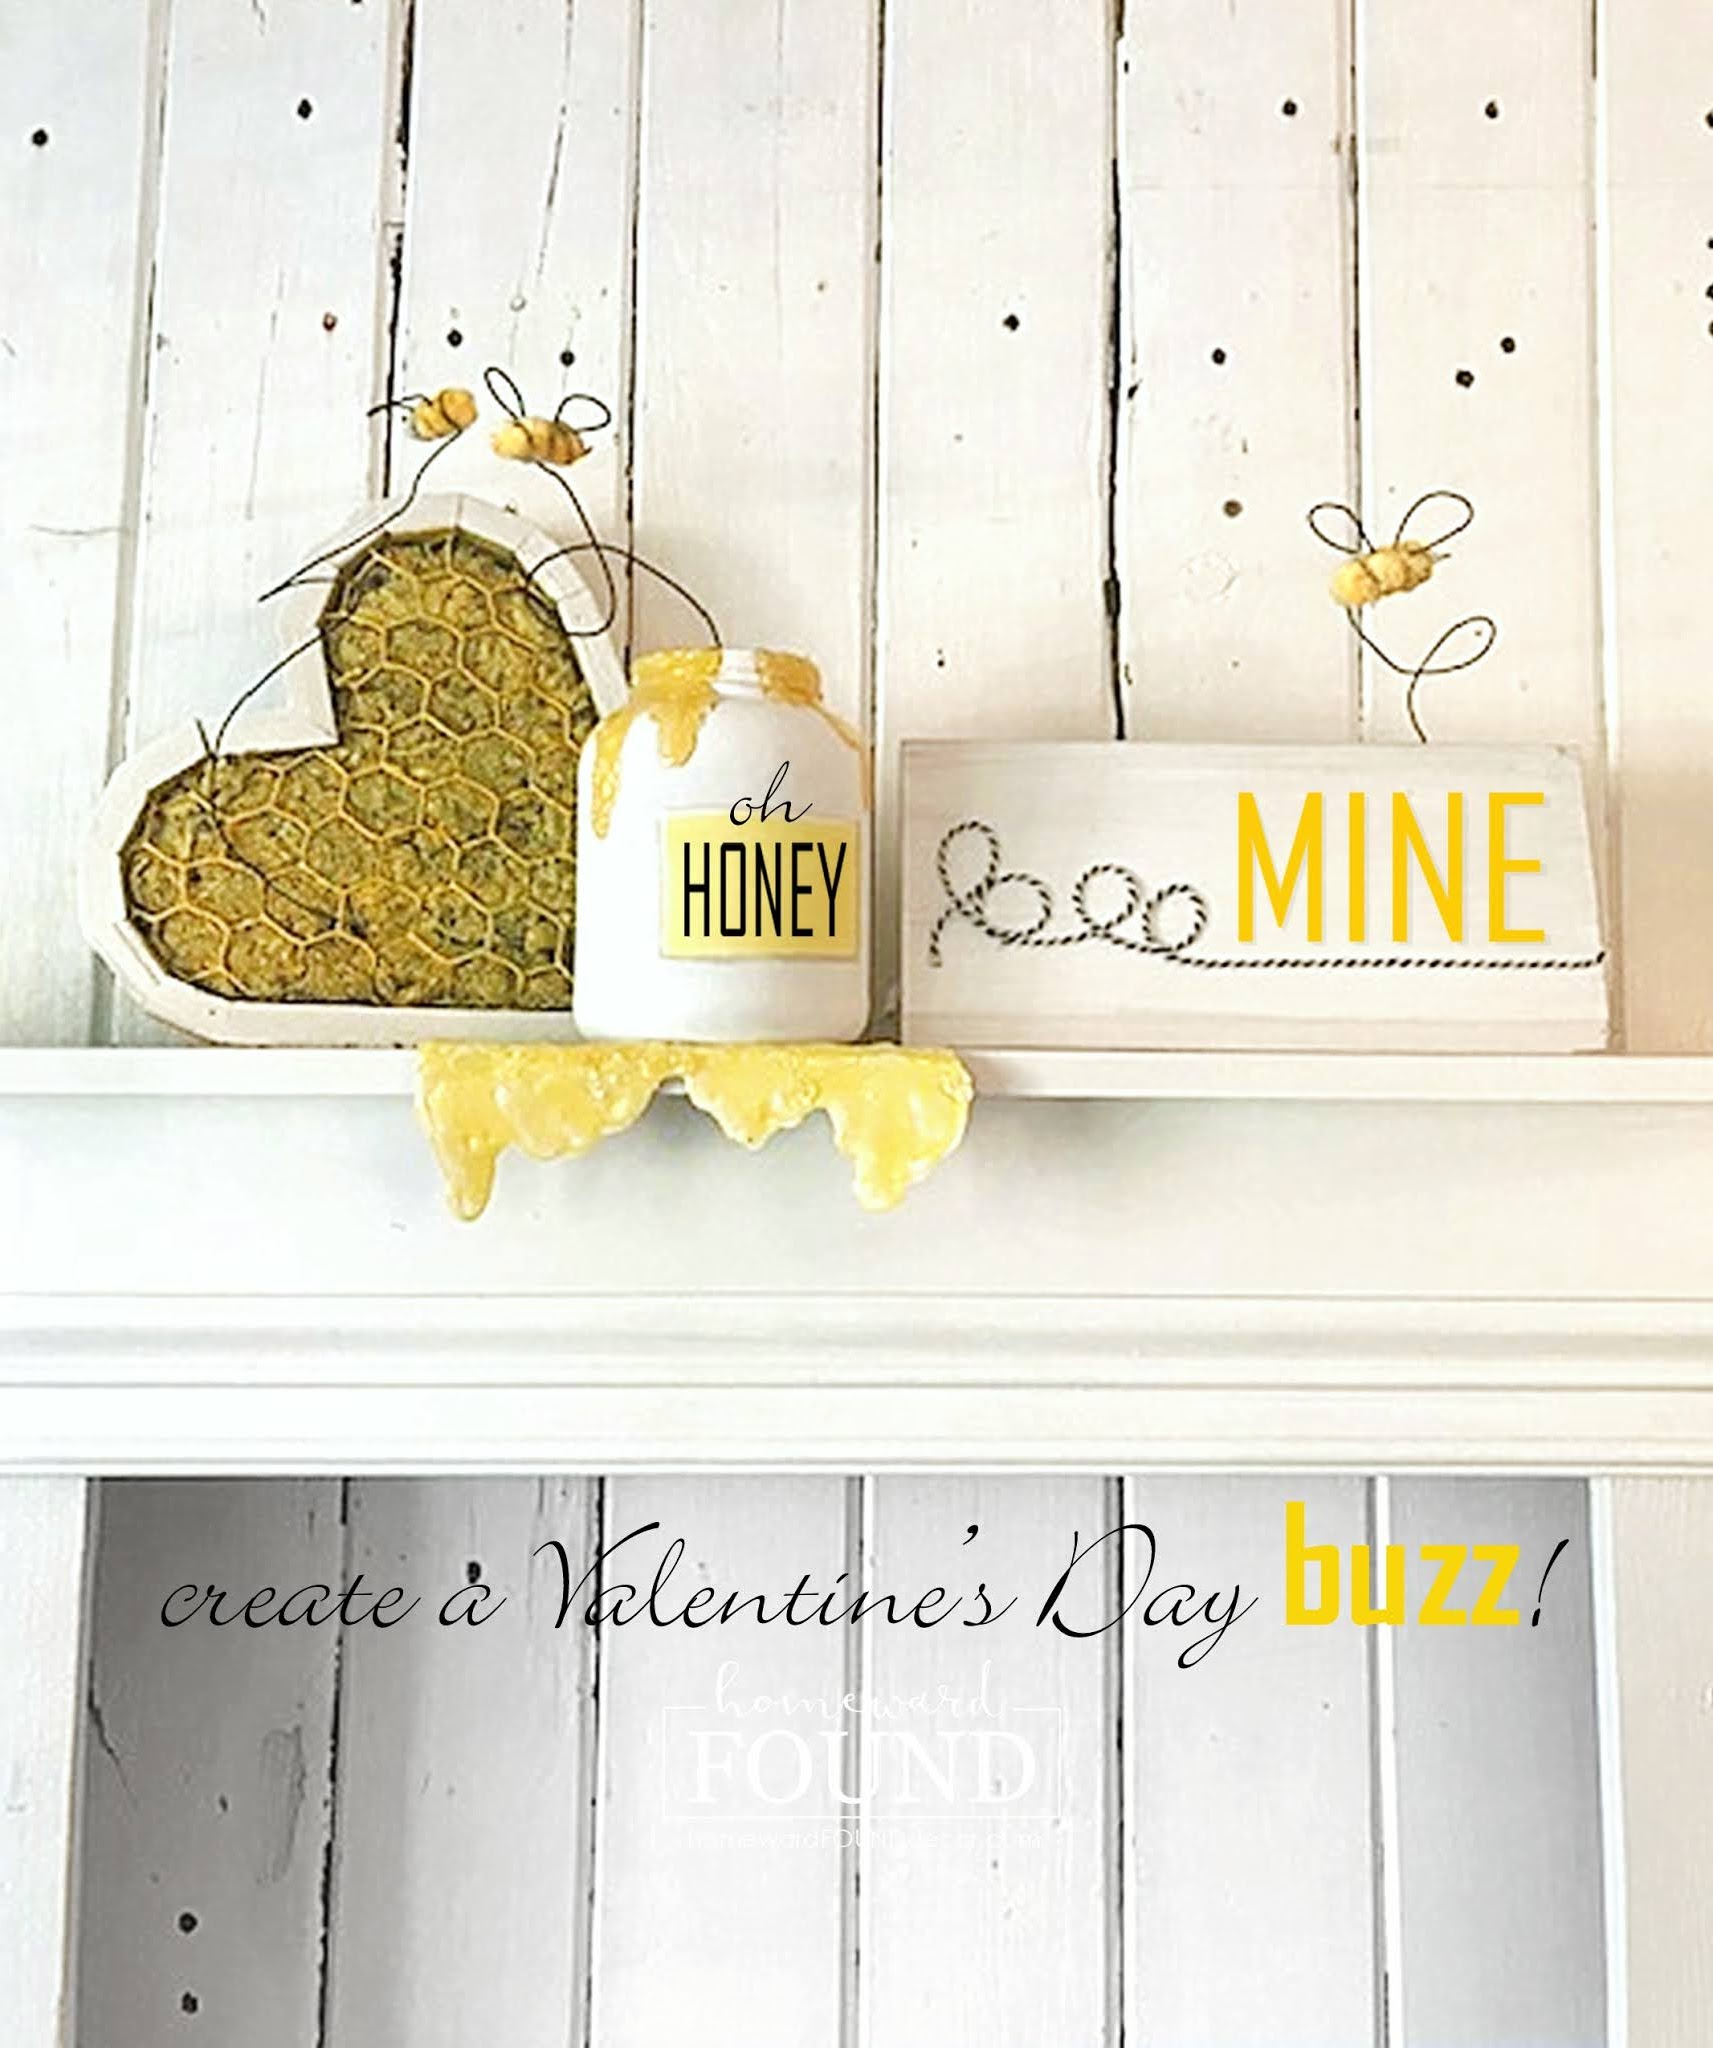 Honey bee Valentine's Day decor by Homeward Found, featured on DIY Salvaged Junk Projects 563 on Funky Junk!